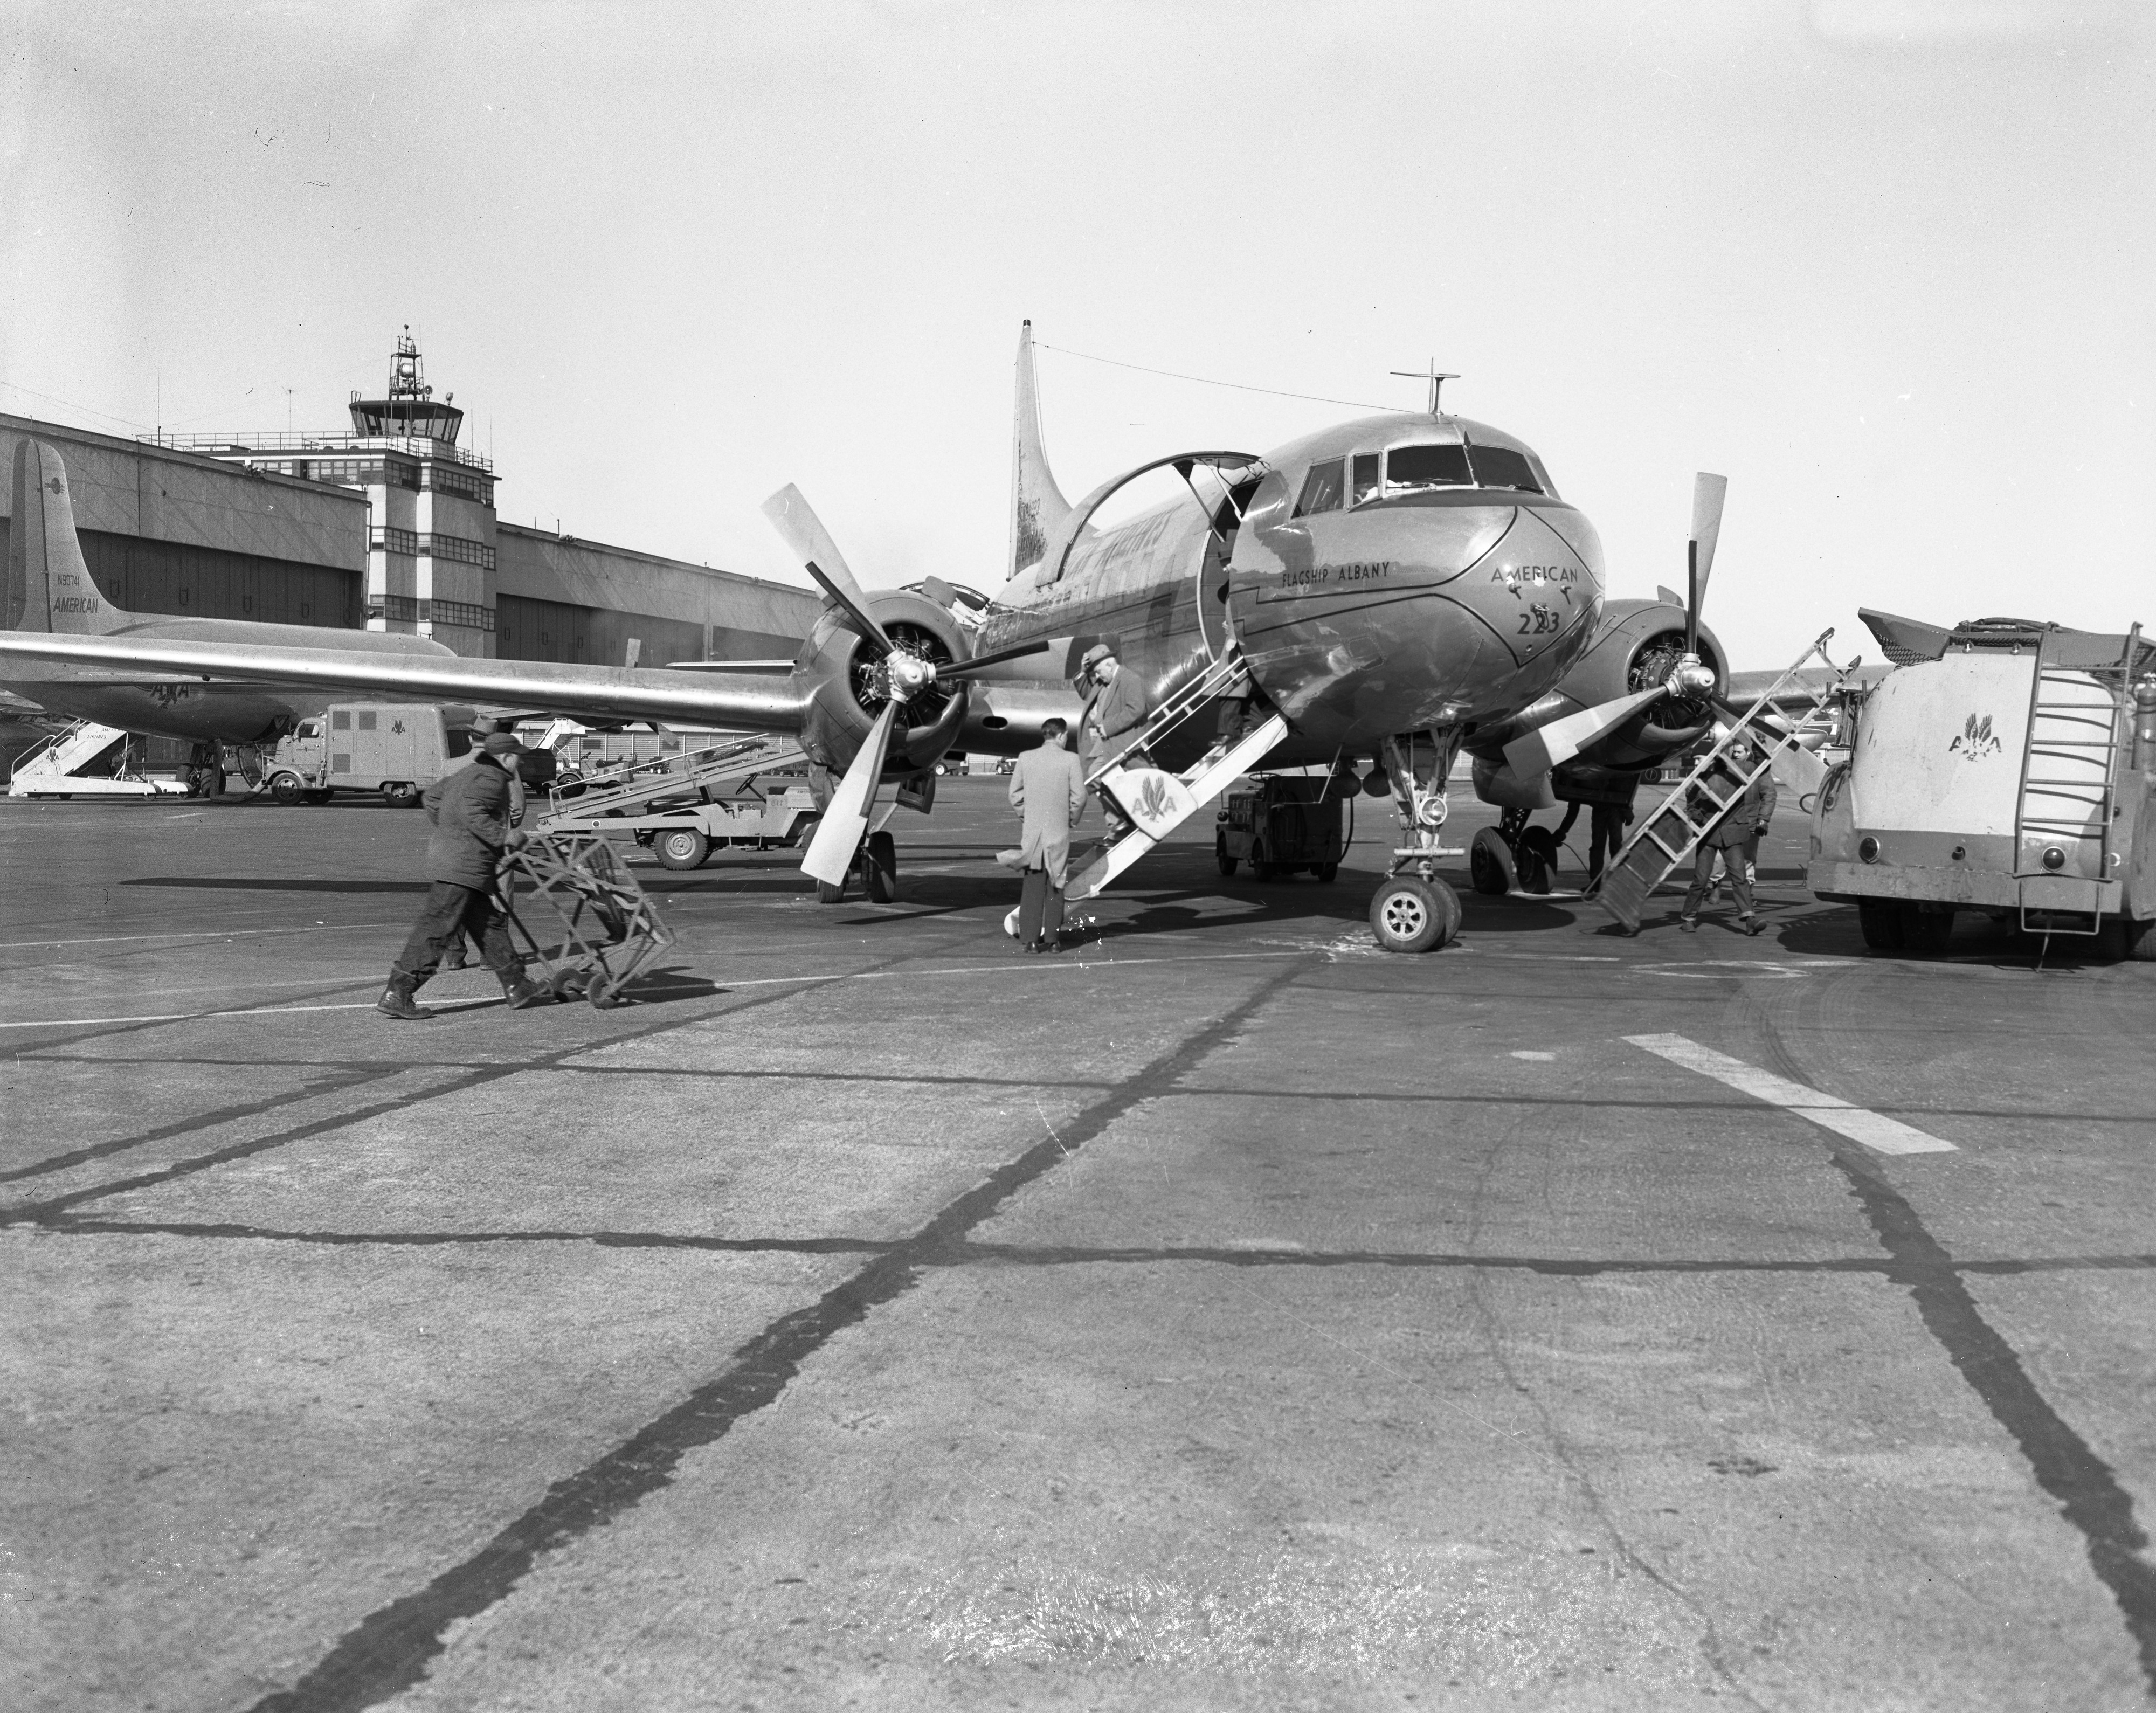 Plane Arrives at Willow Run Airport, February 1954 image